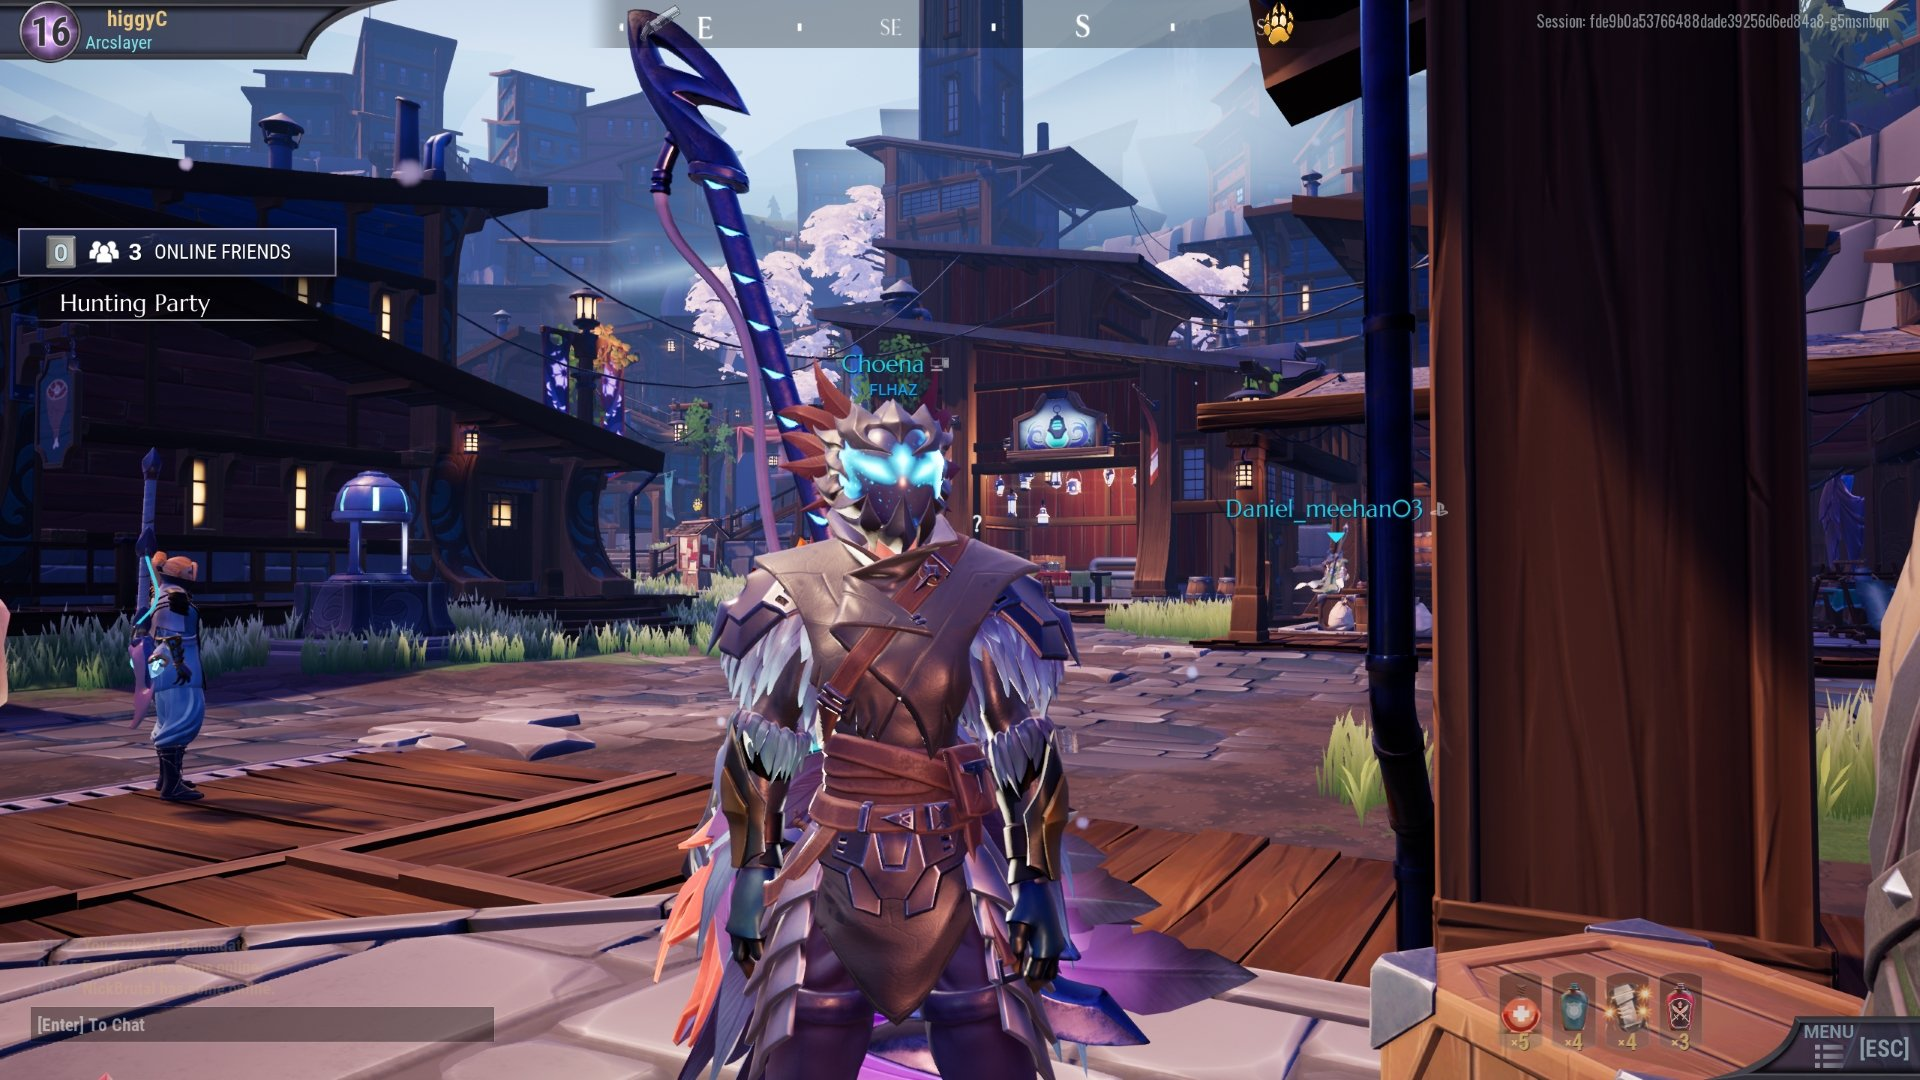 How to get the Tragic Echo Exotic Armor in Dauntless